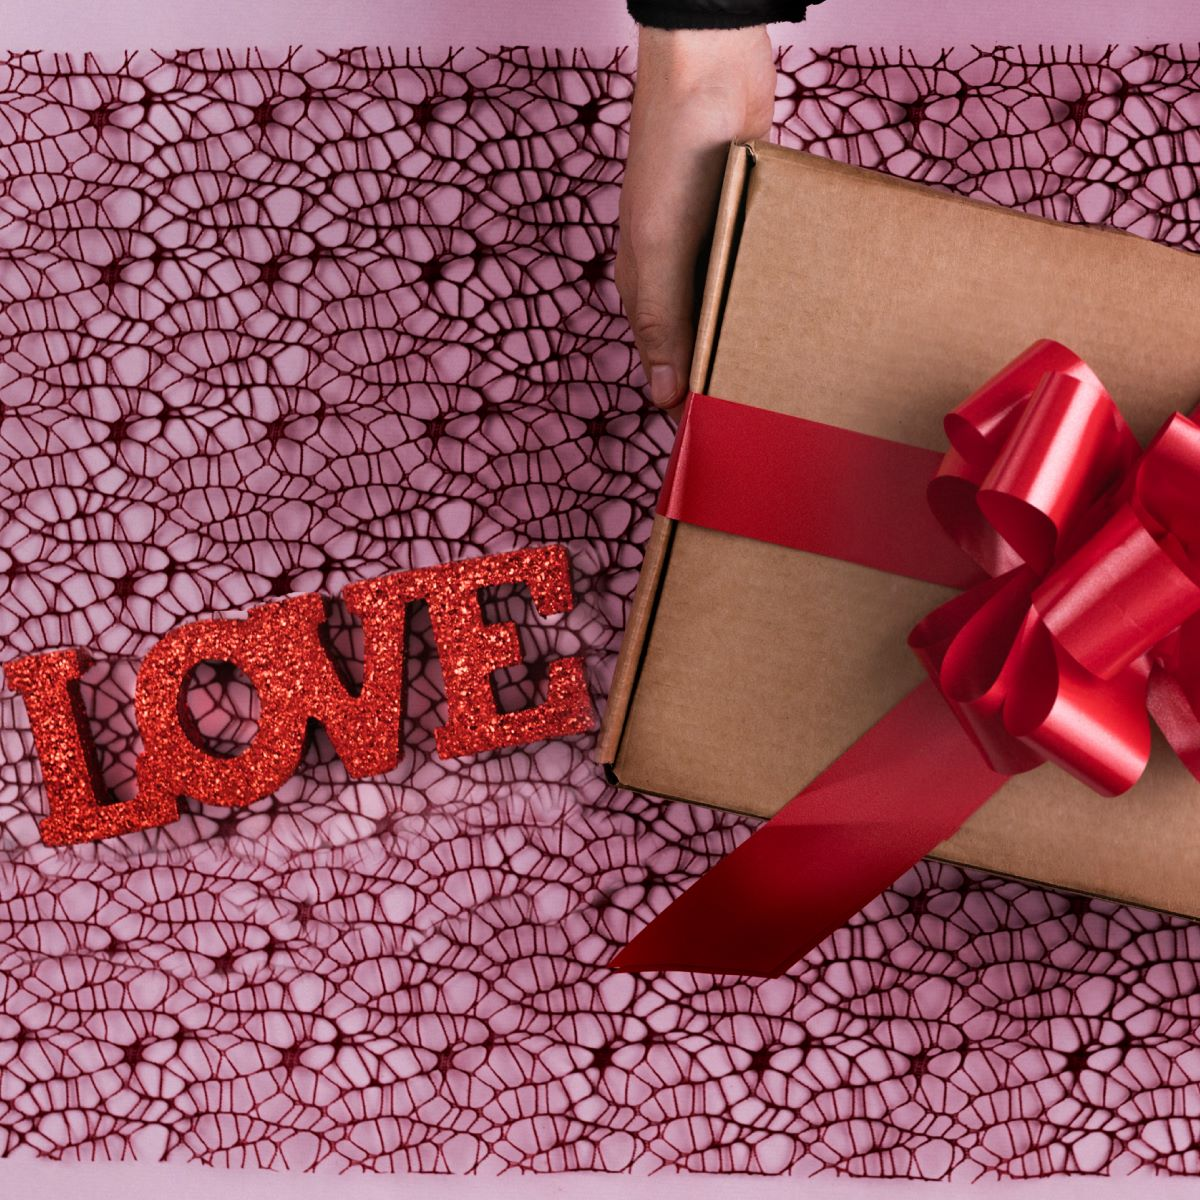 Earn safe points this Valentine's Day with BOV Cards